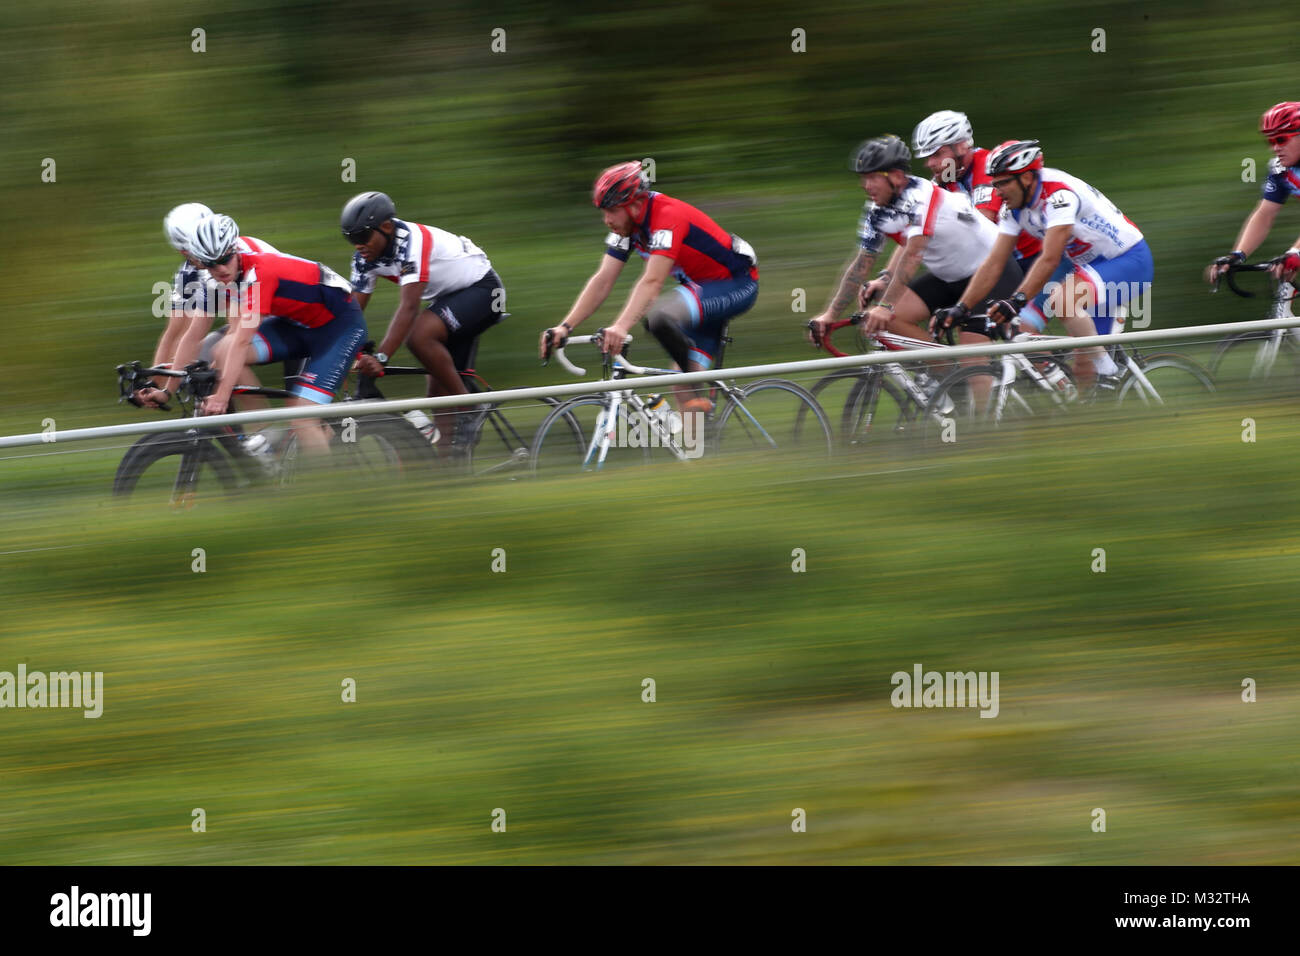 LONDON, ENGLAND - SEPTEMBER 13:  The peloton race during the Men's Circuit Road Bike Race 2 IRB2 race during - Stock Image